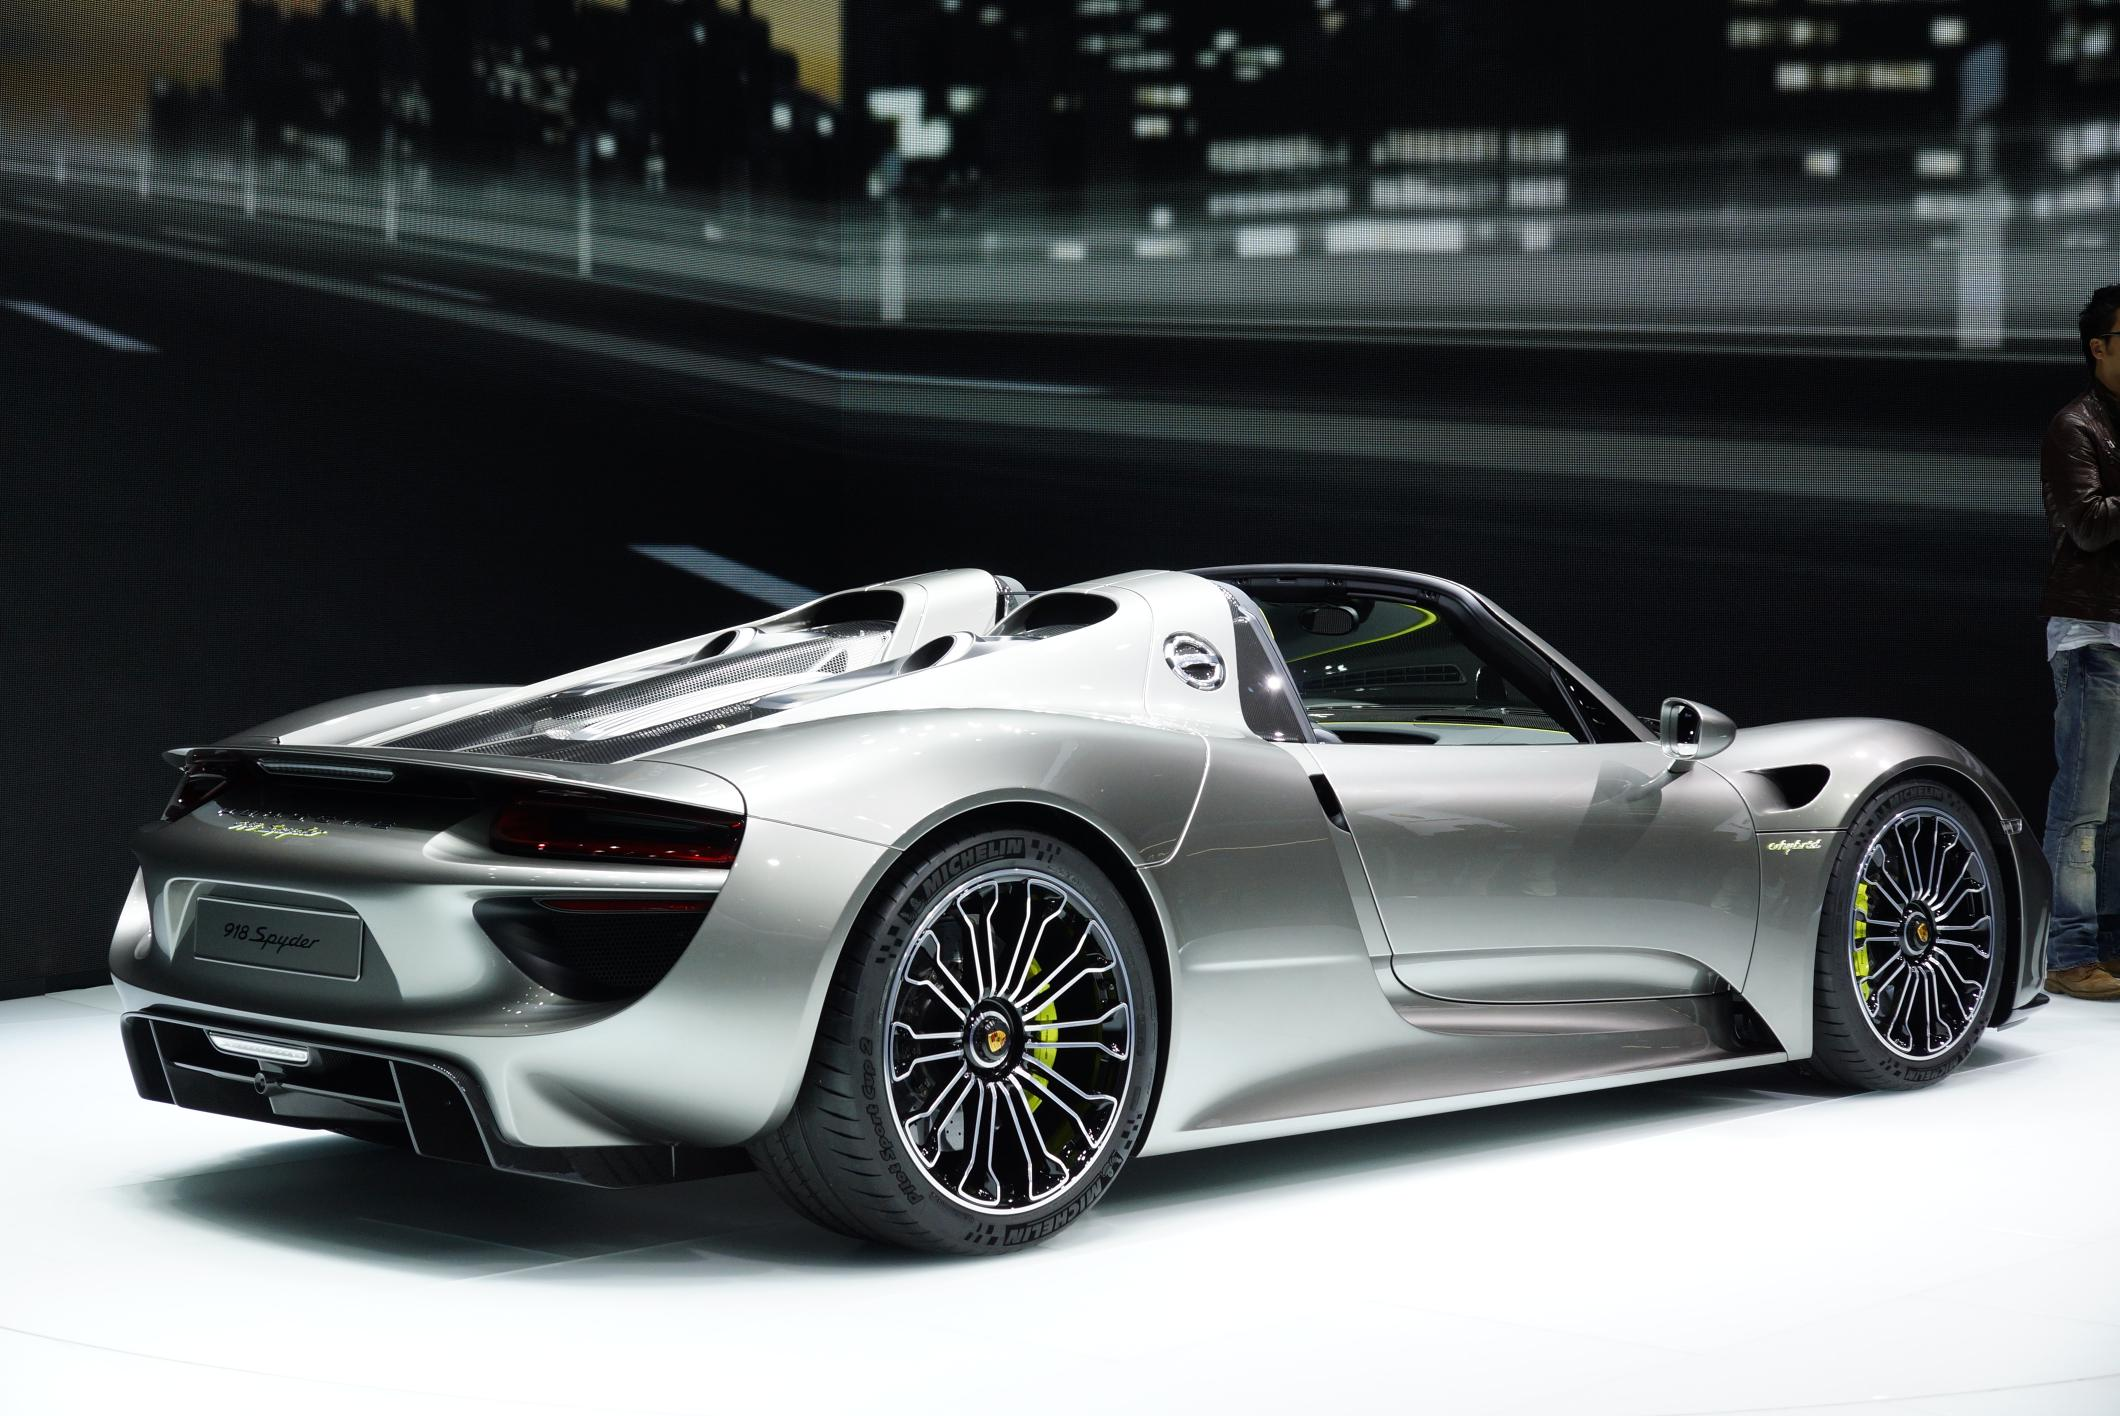 photo porsche 918 spyder hybride salon de francfort 2013 m diatheque. Black Bedroom Furniture Sets. Home Design Ideas